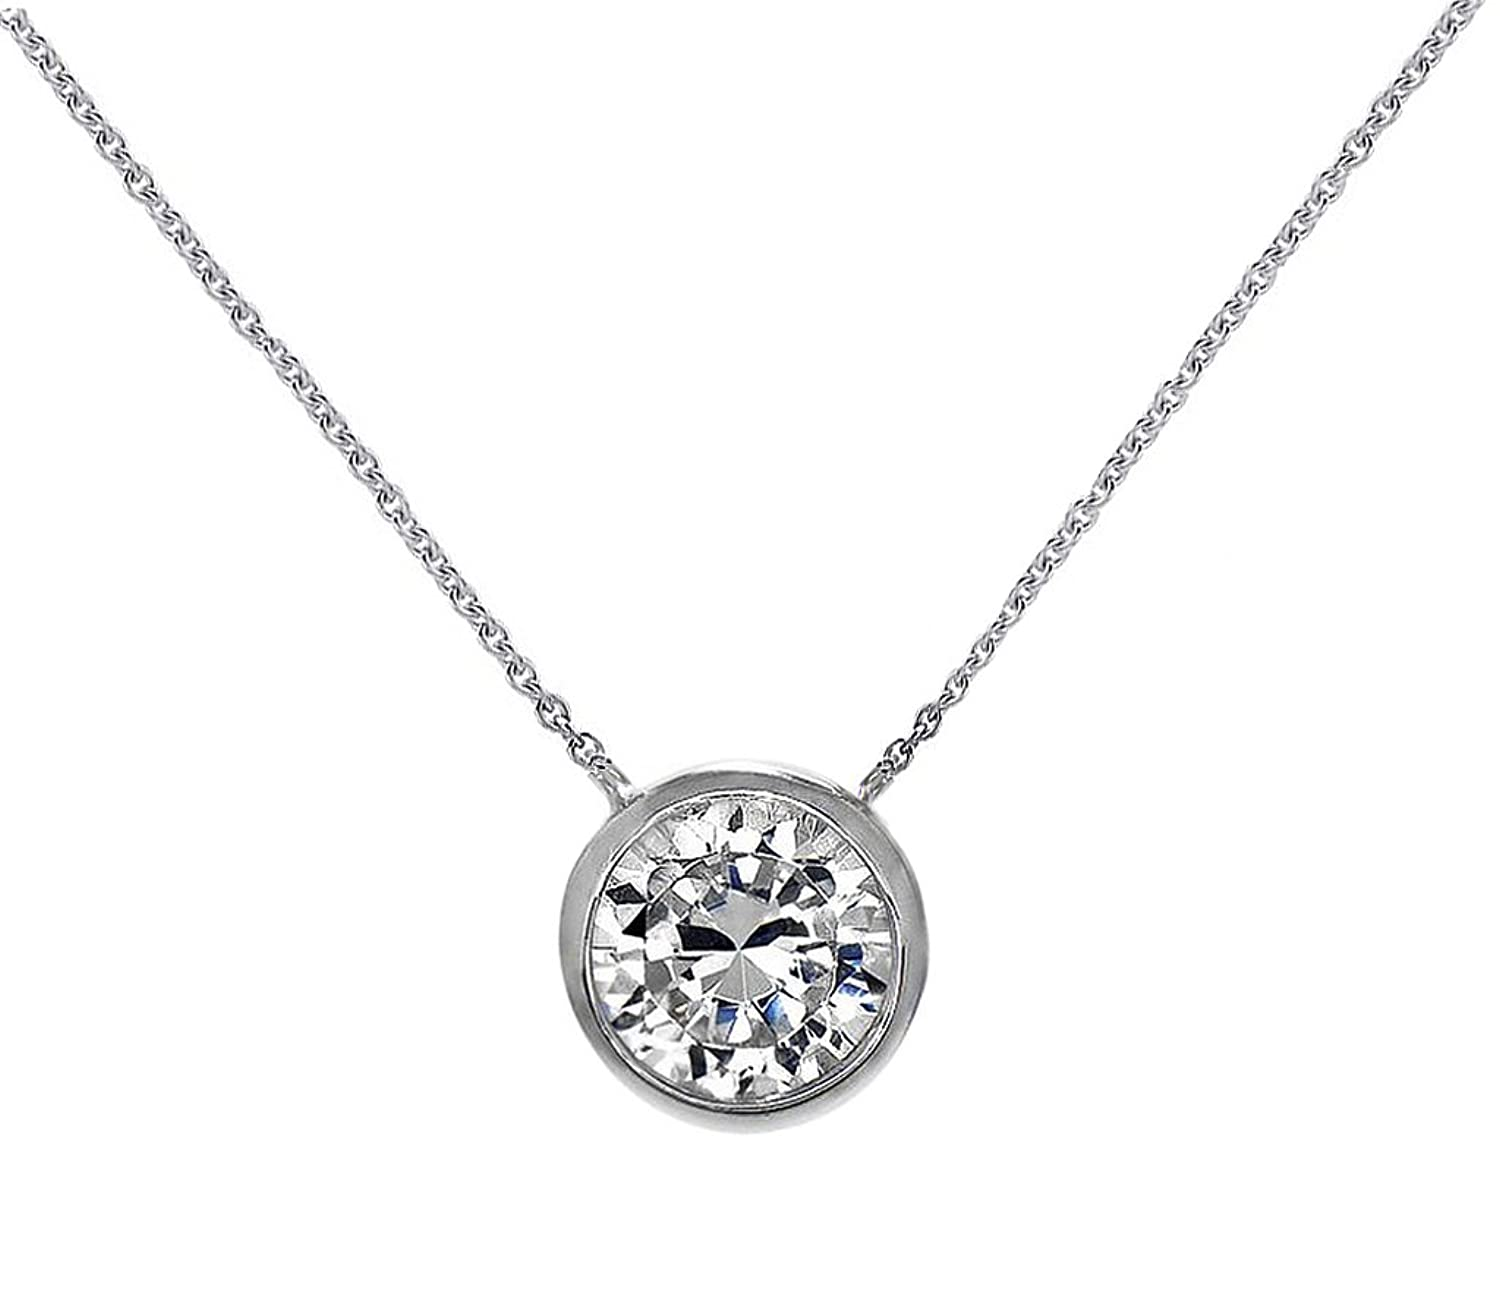 Amazon solitaire pendant necklace 925 sterling silver round amazon solitaire pendant necklace 925 sterling silver round 6mm cz bezel set 16 18 free box tiffany co jewelry aloadofball Gallery